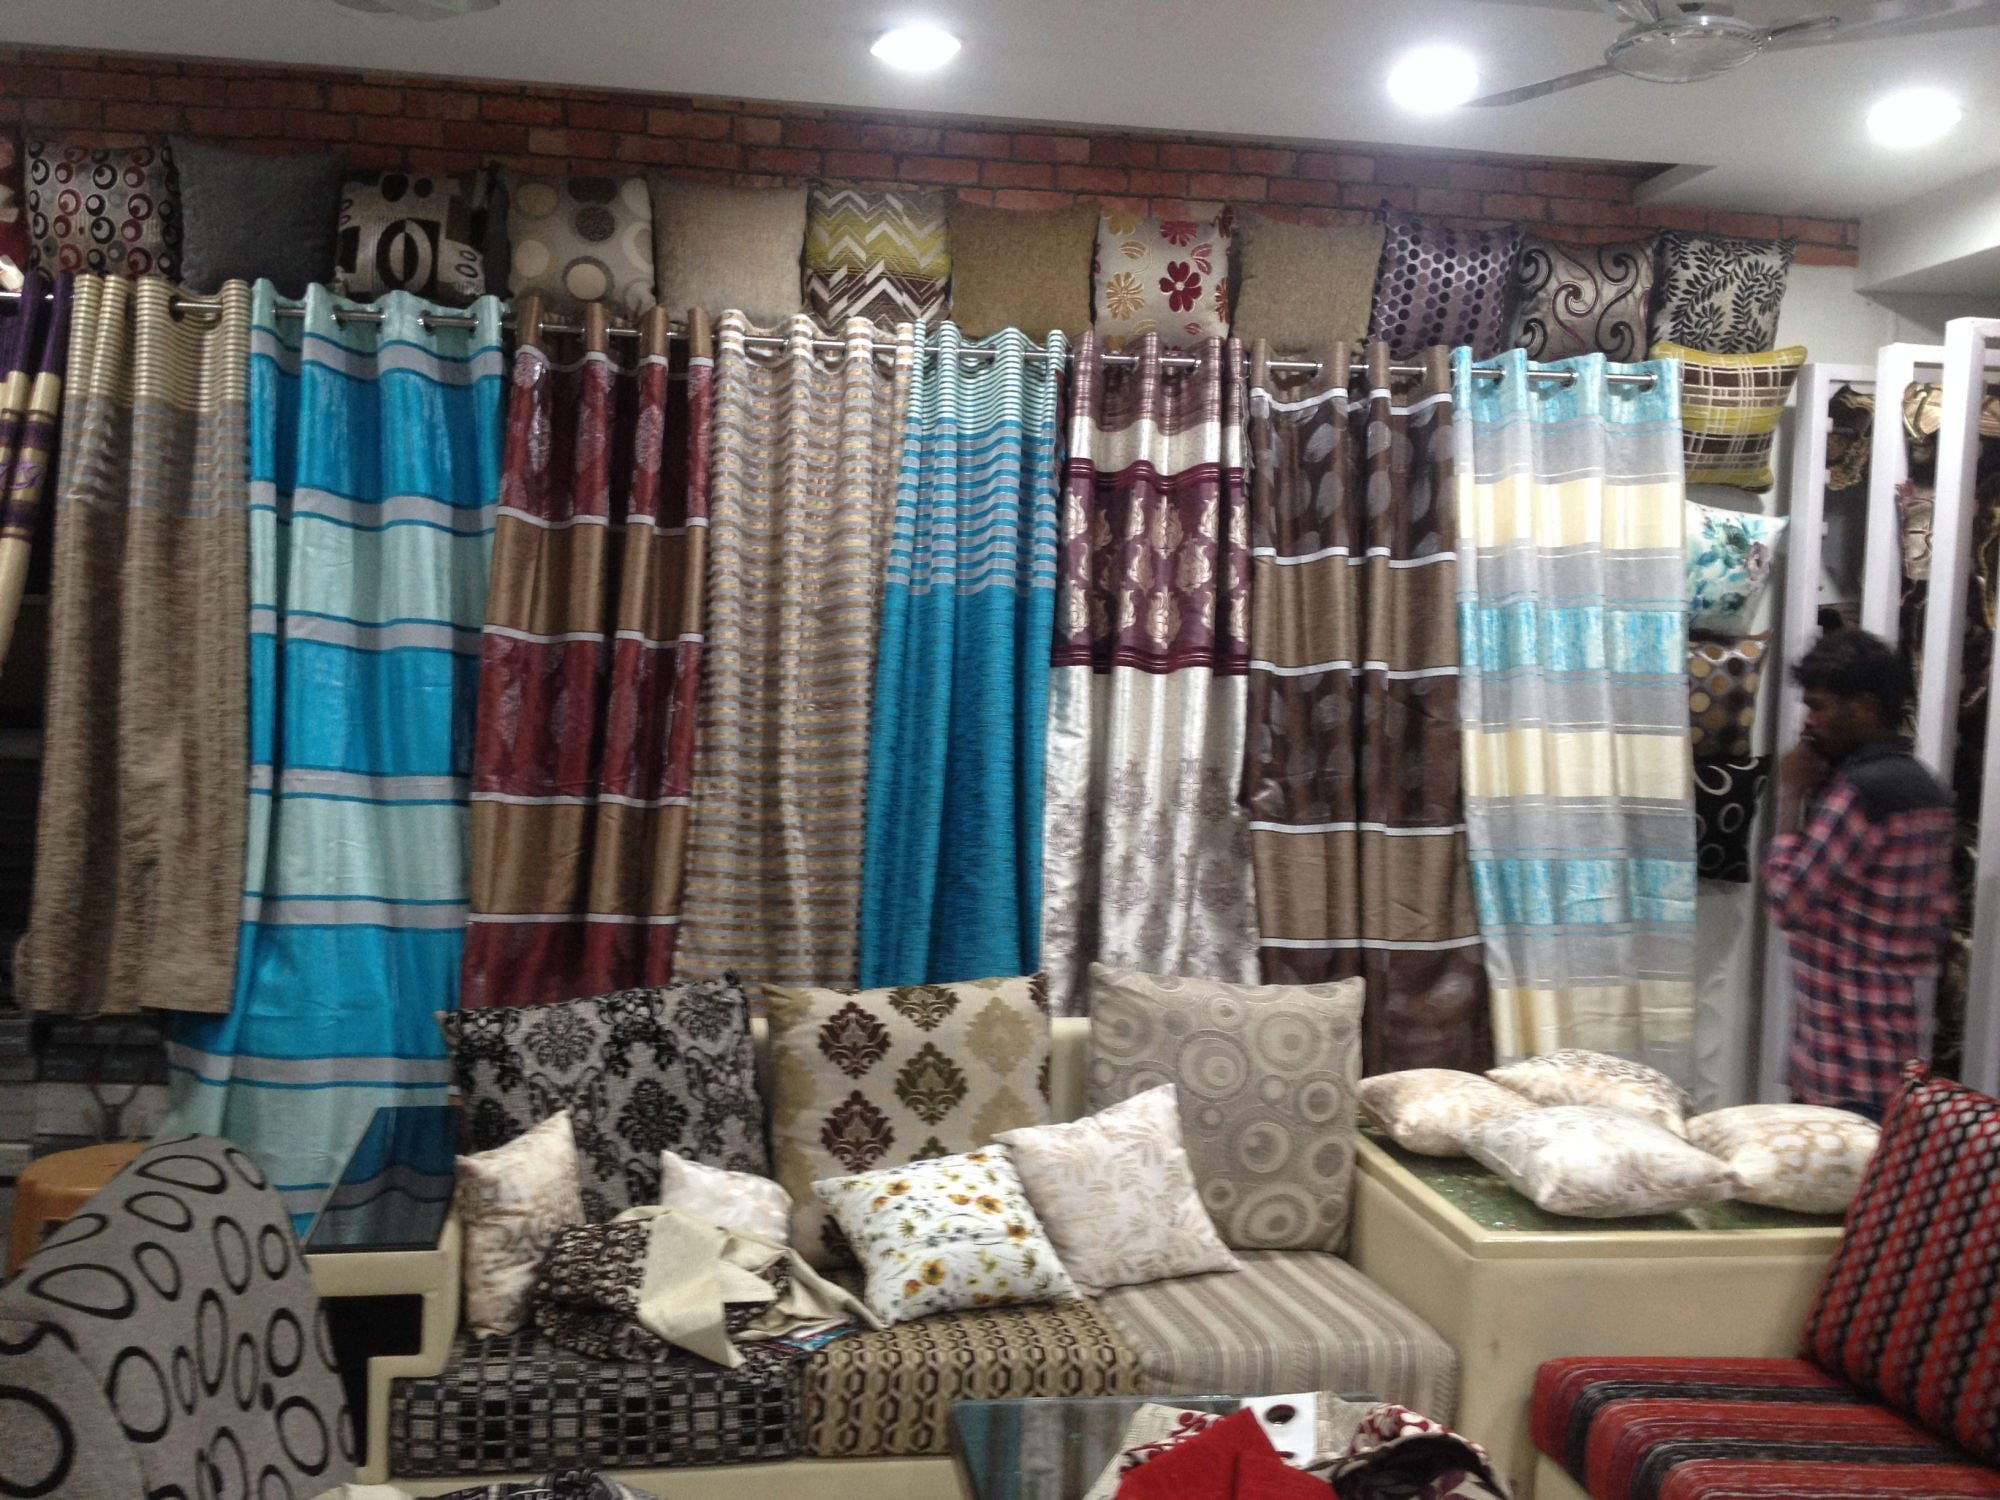 Top 30 D Decor Curtain Fabric Retailers In Hyderabad Best D Decor